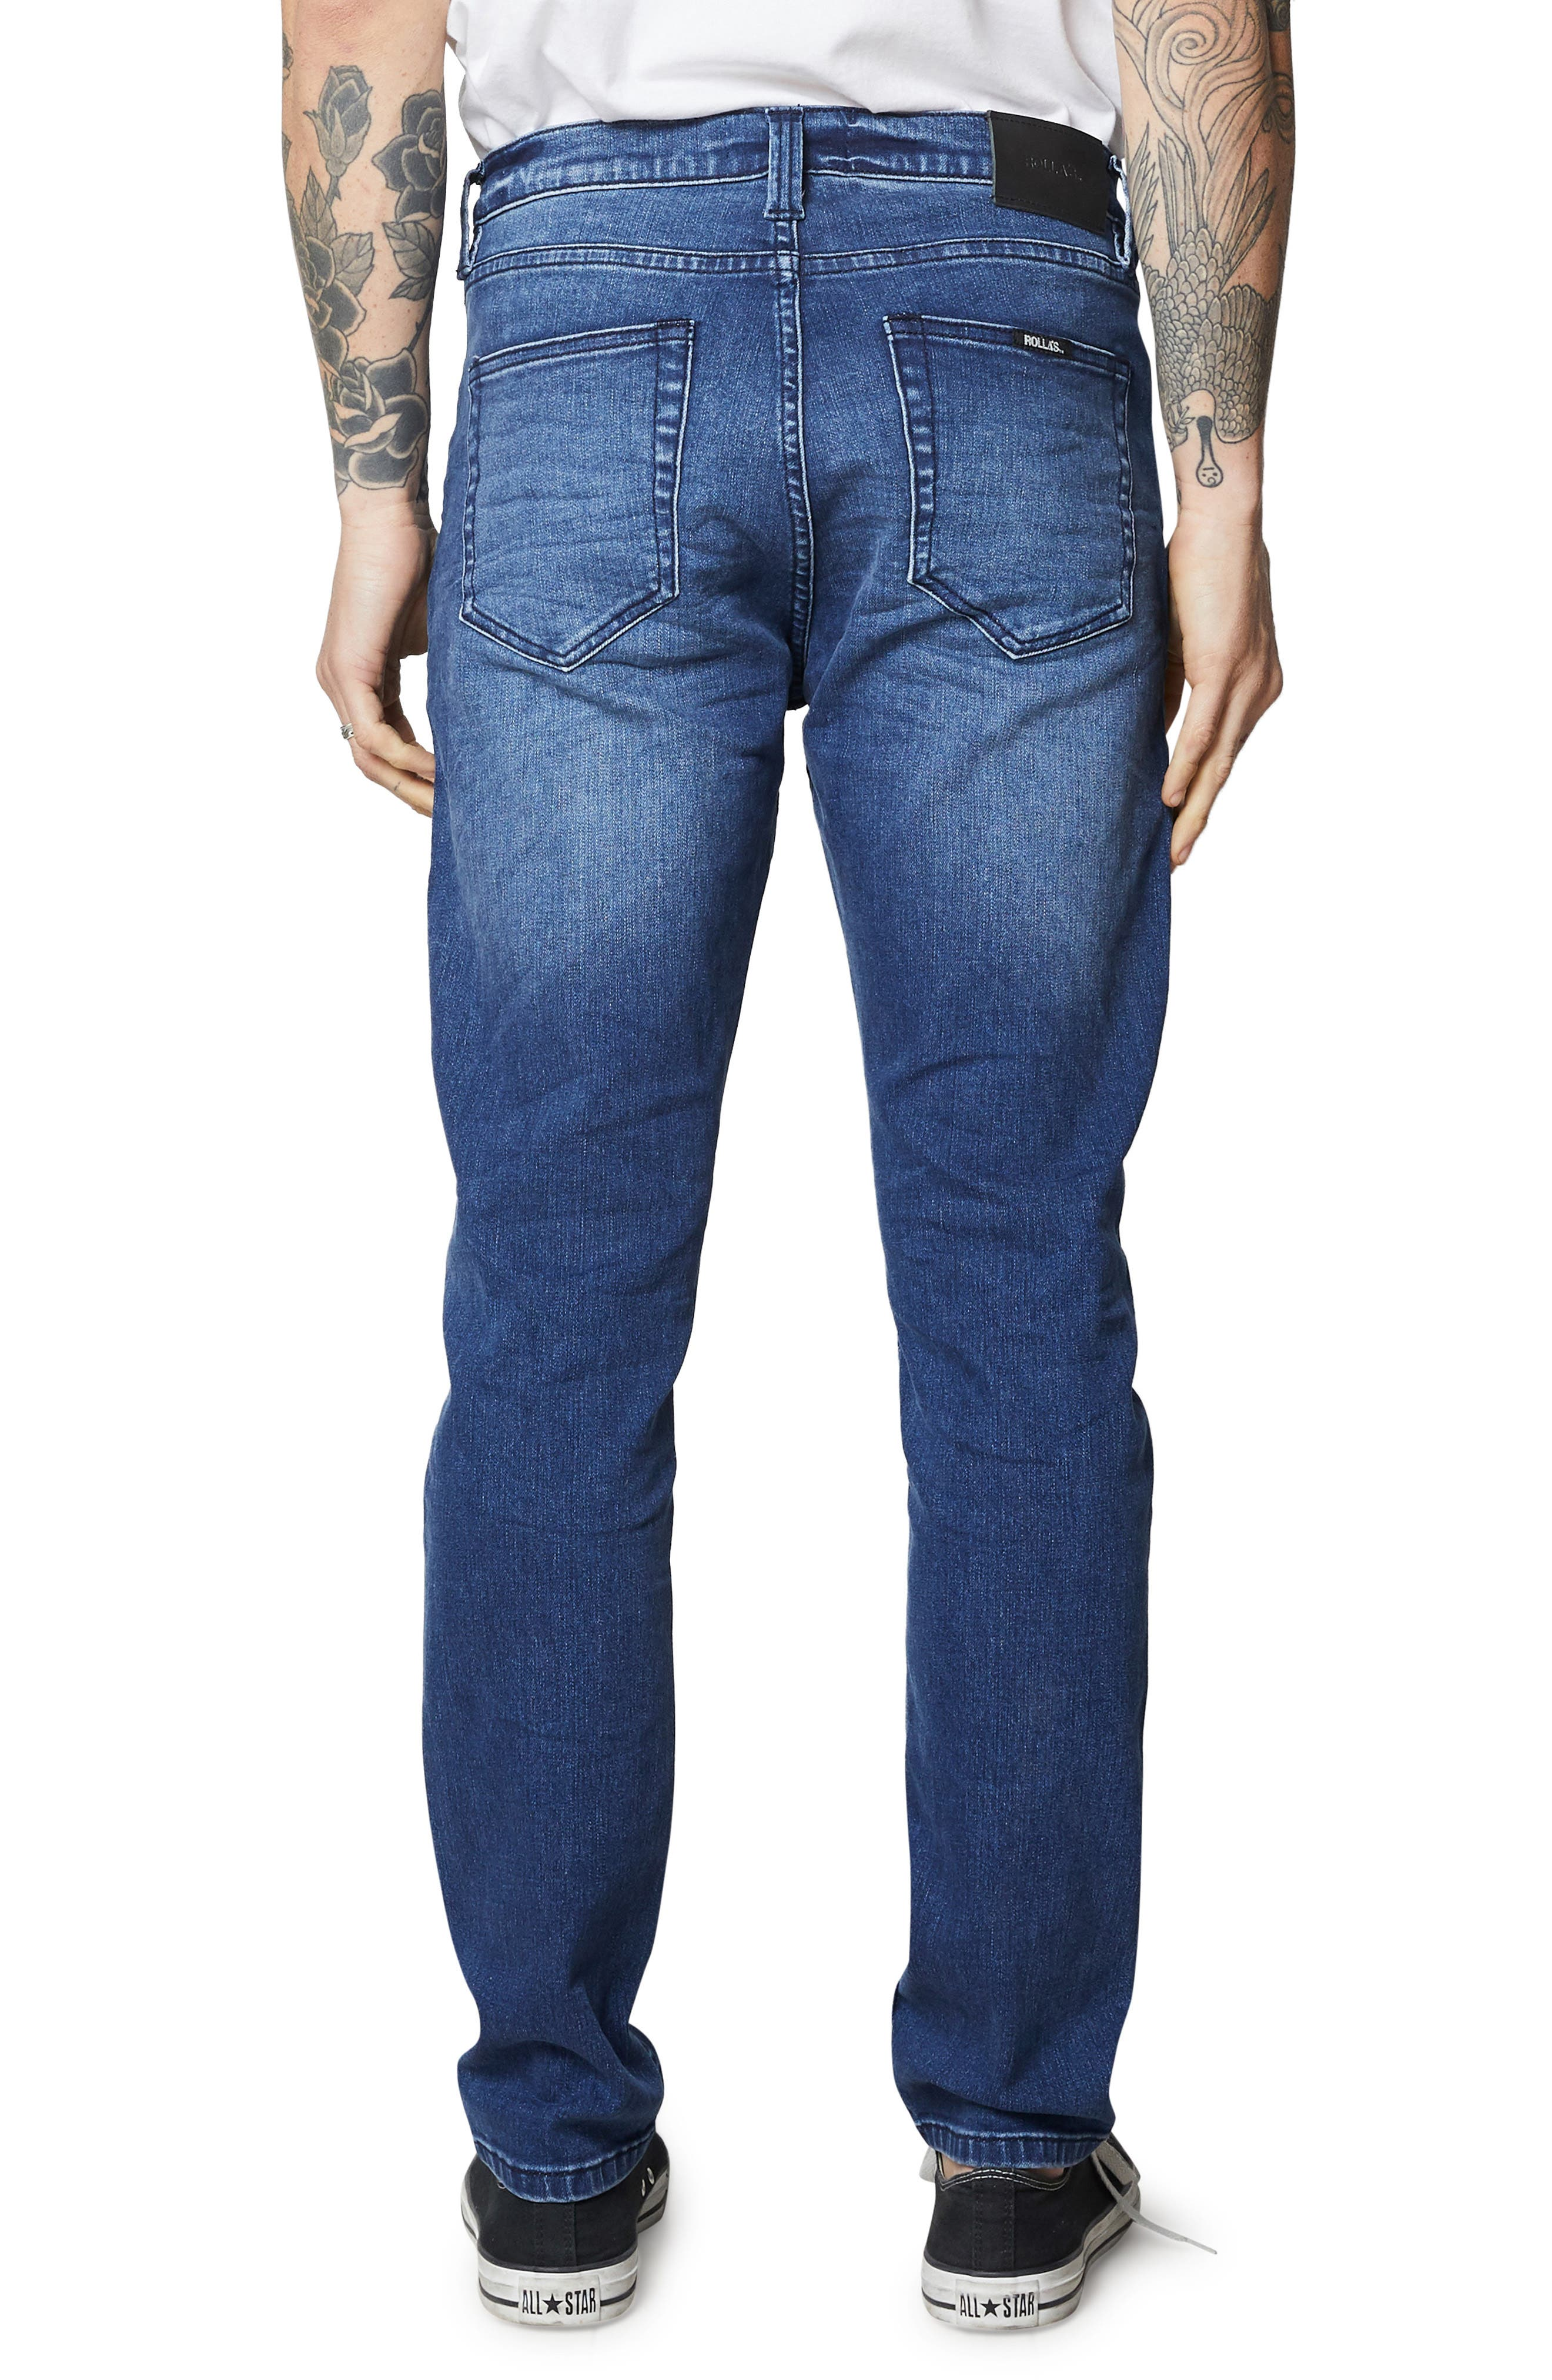 ROLLA'S,                             Tim Slims Slim Fit Jeans,                             Alternate thumbnail 2, color,                             FOSTERS BLUE